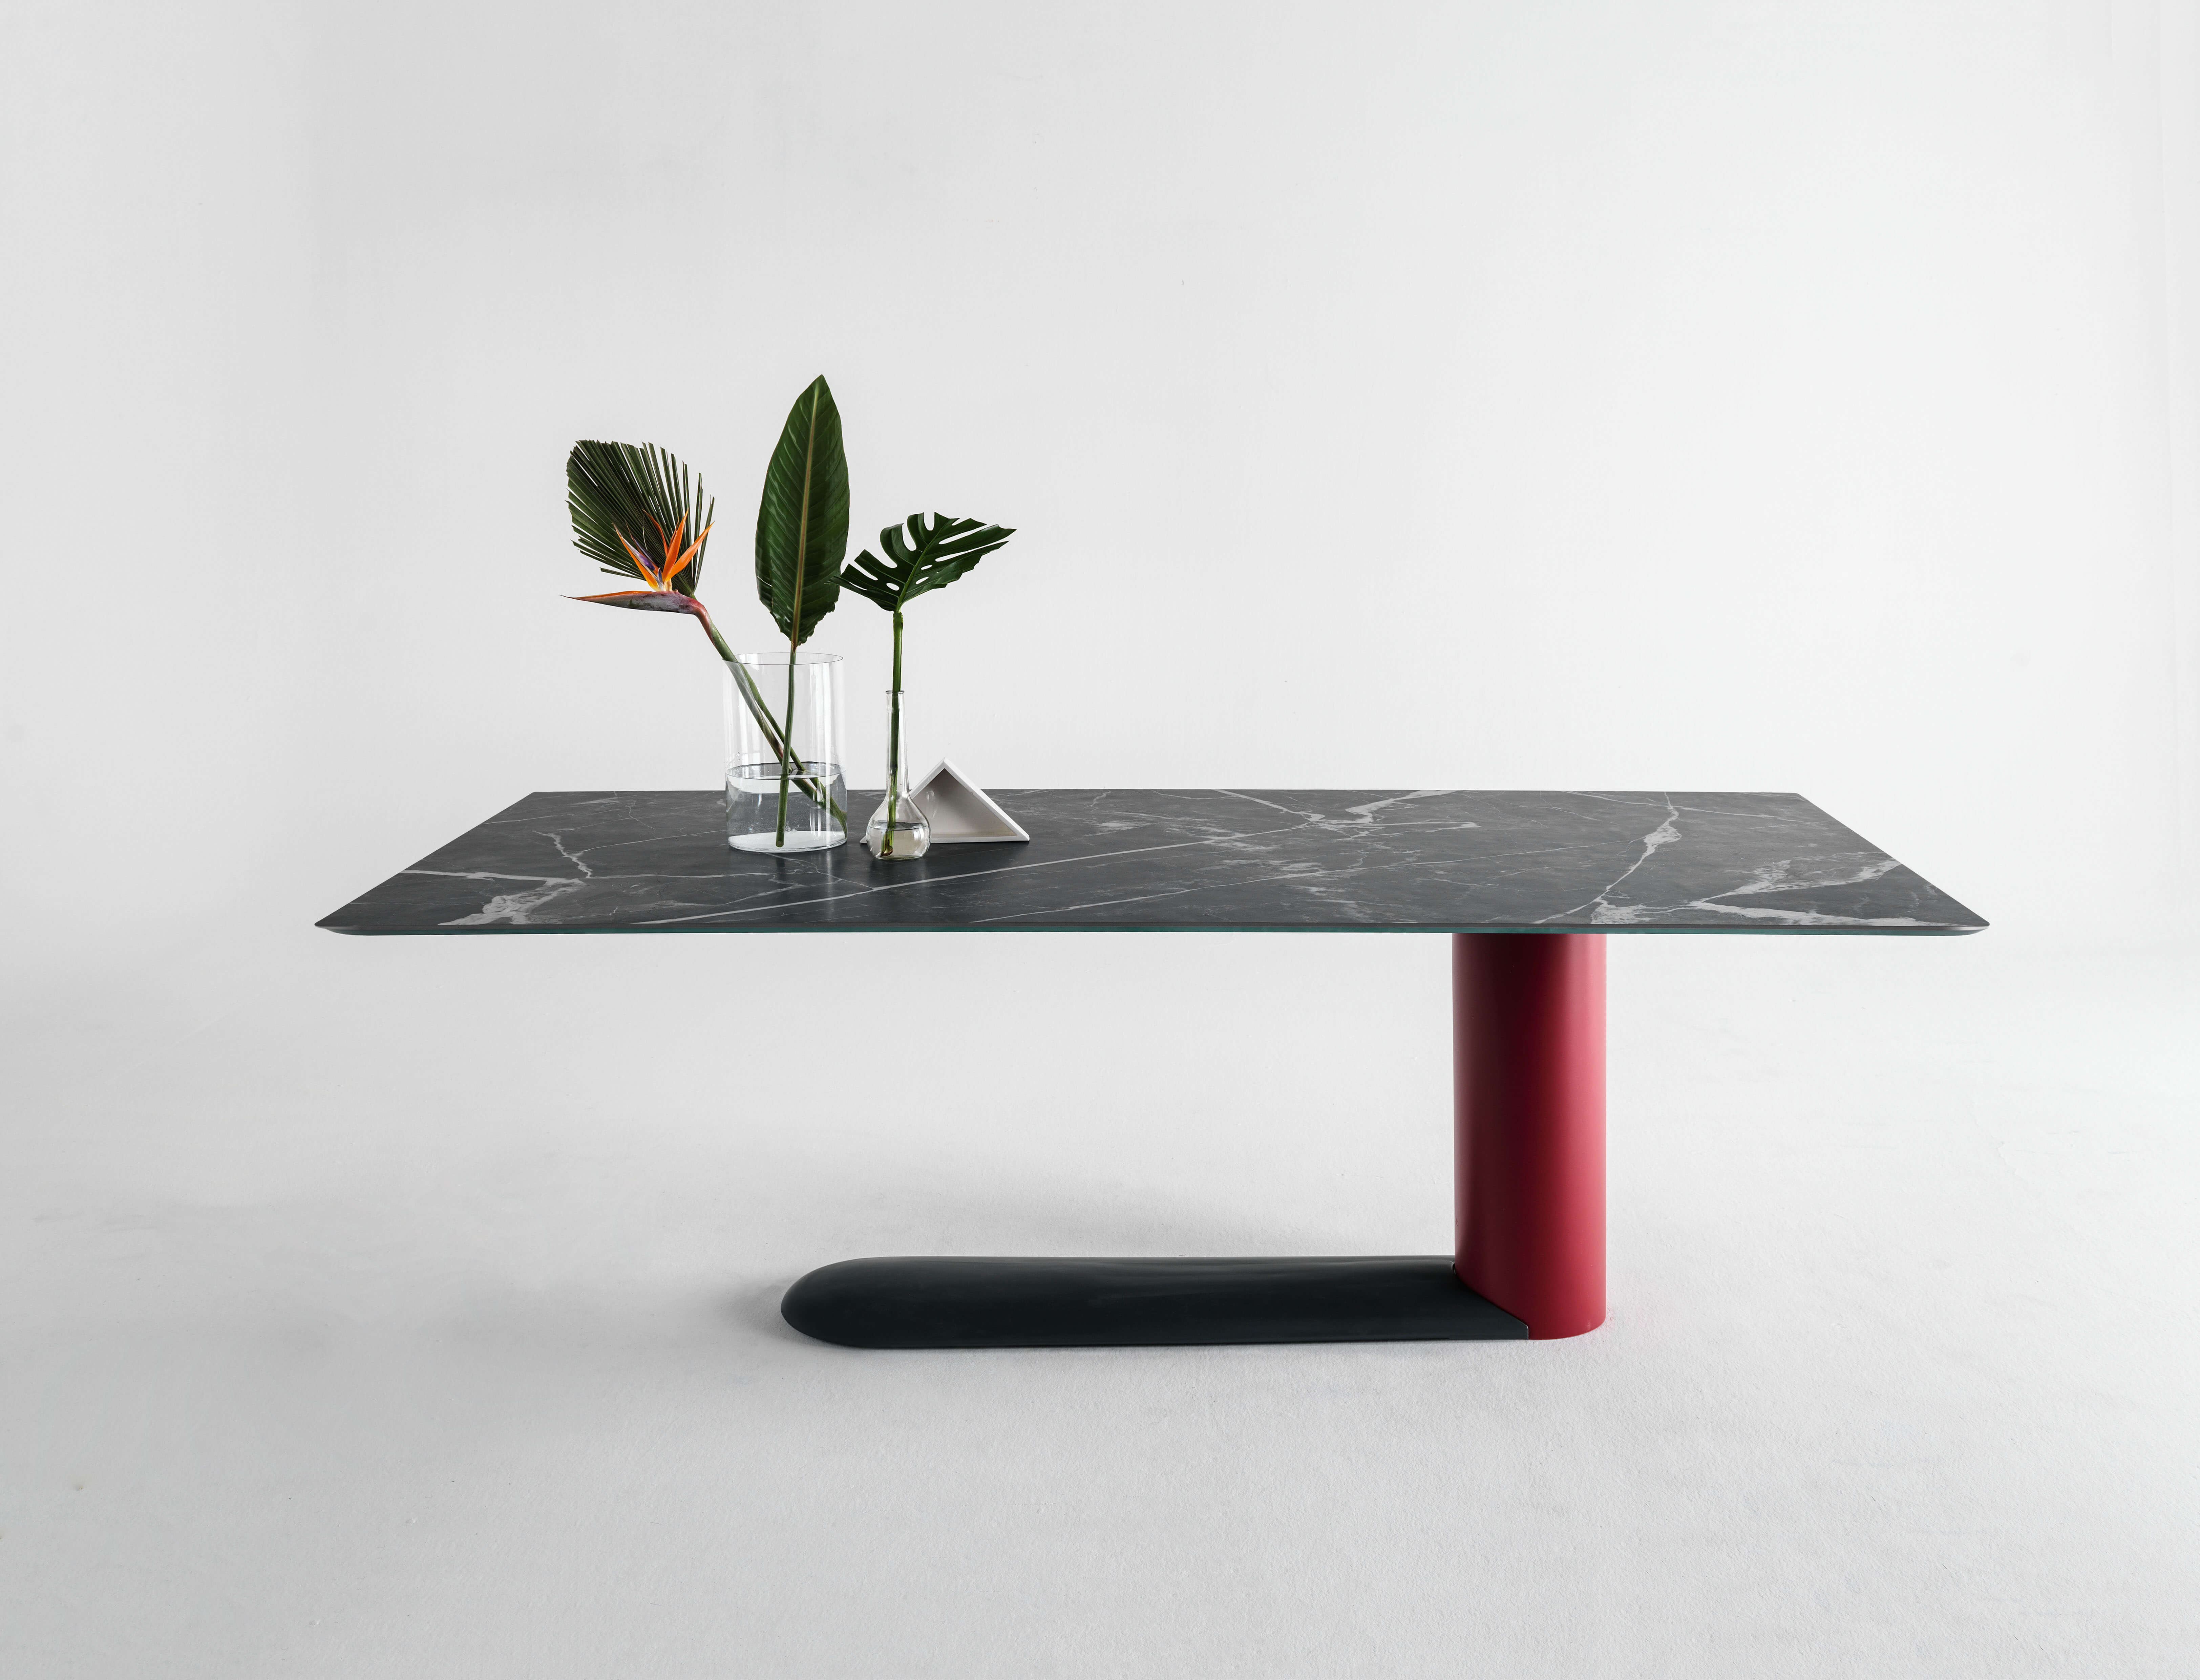 Good Design Award 2018 For The Bold Table And The Innovative Xglass